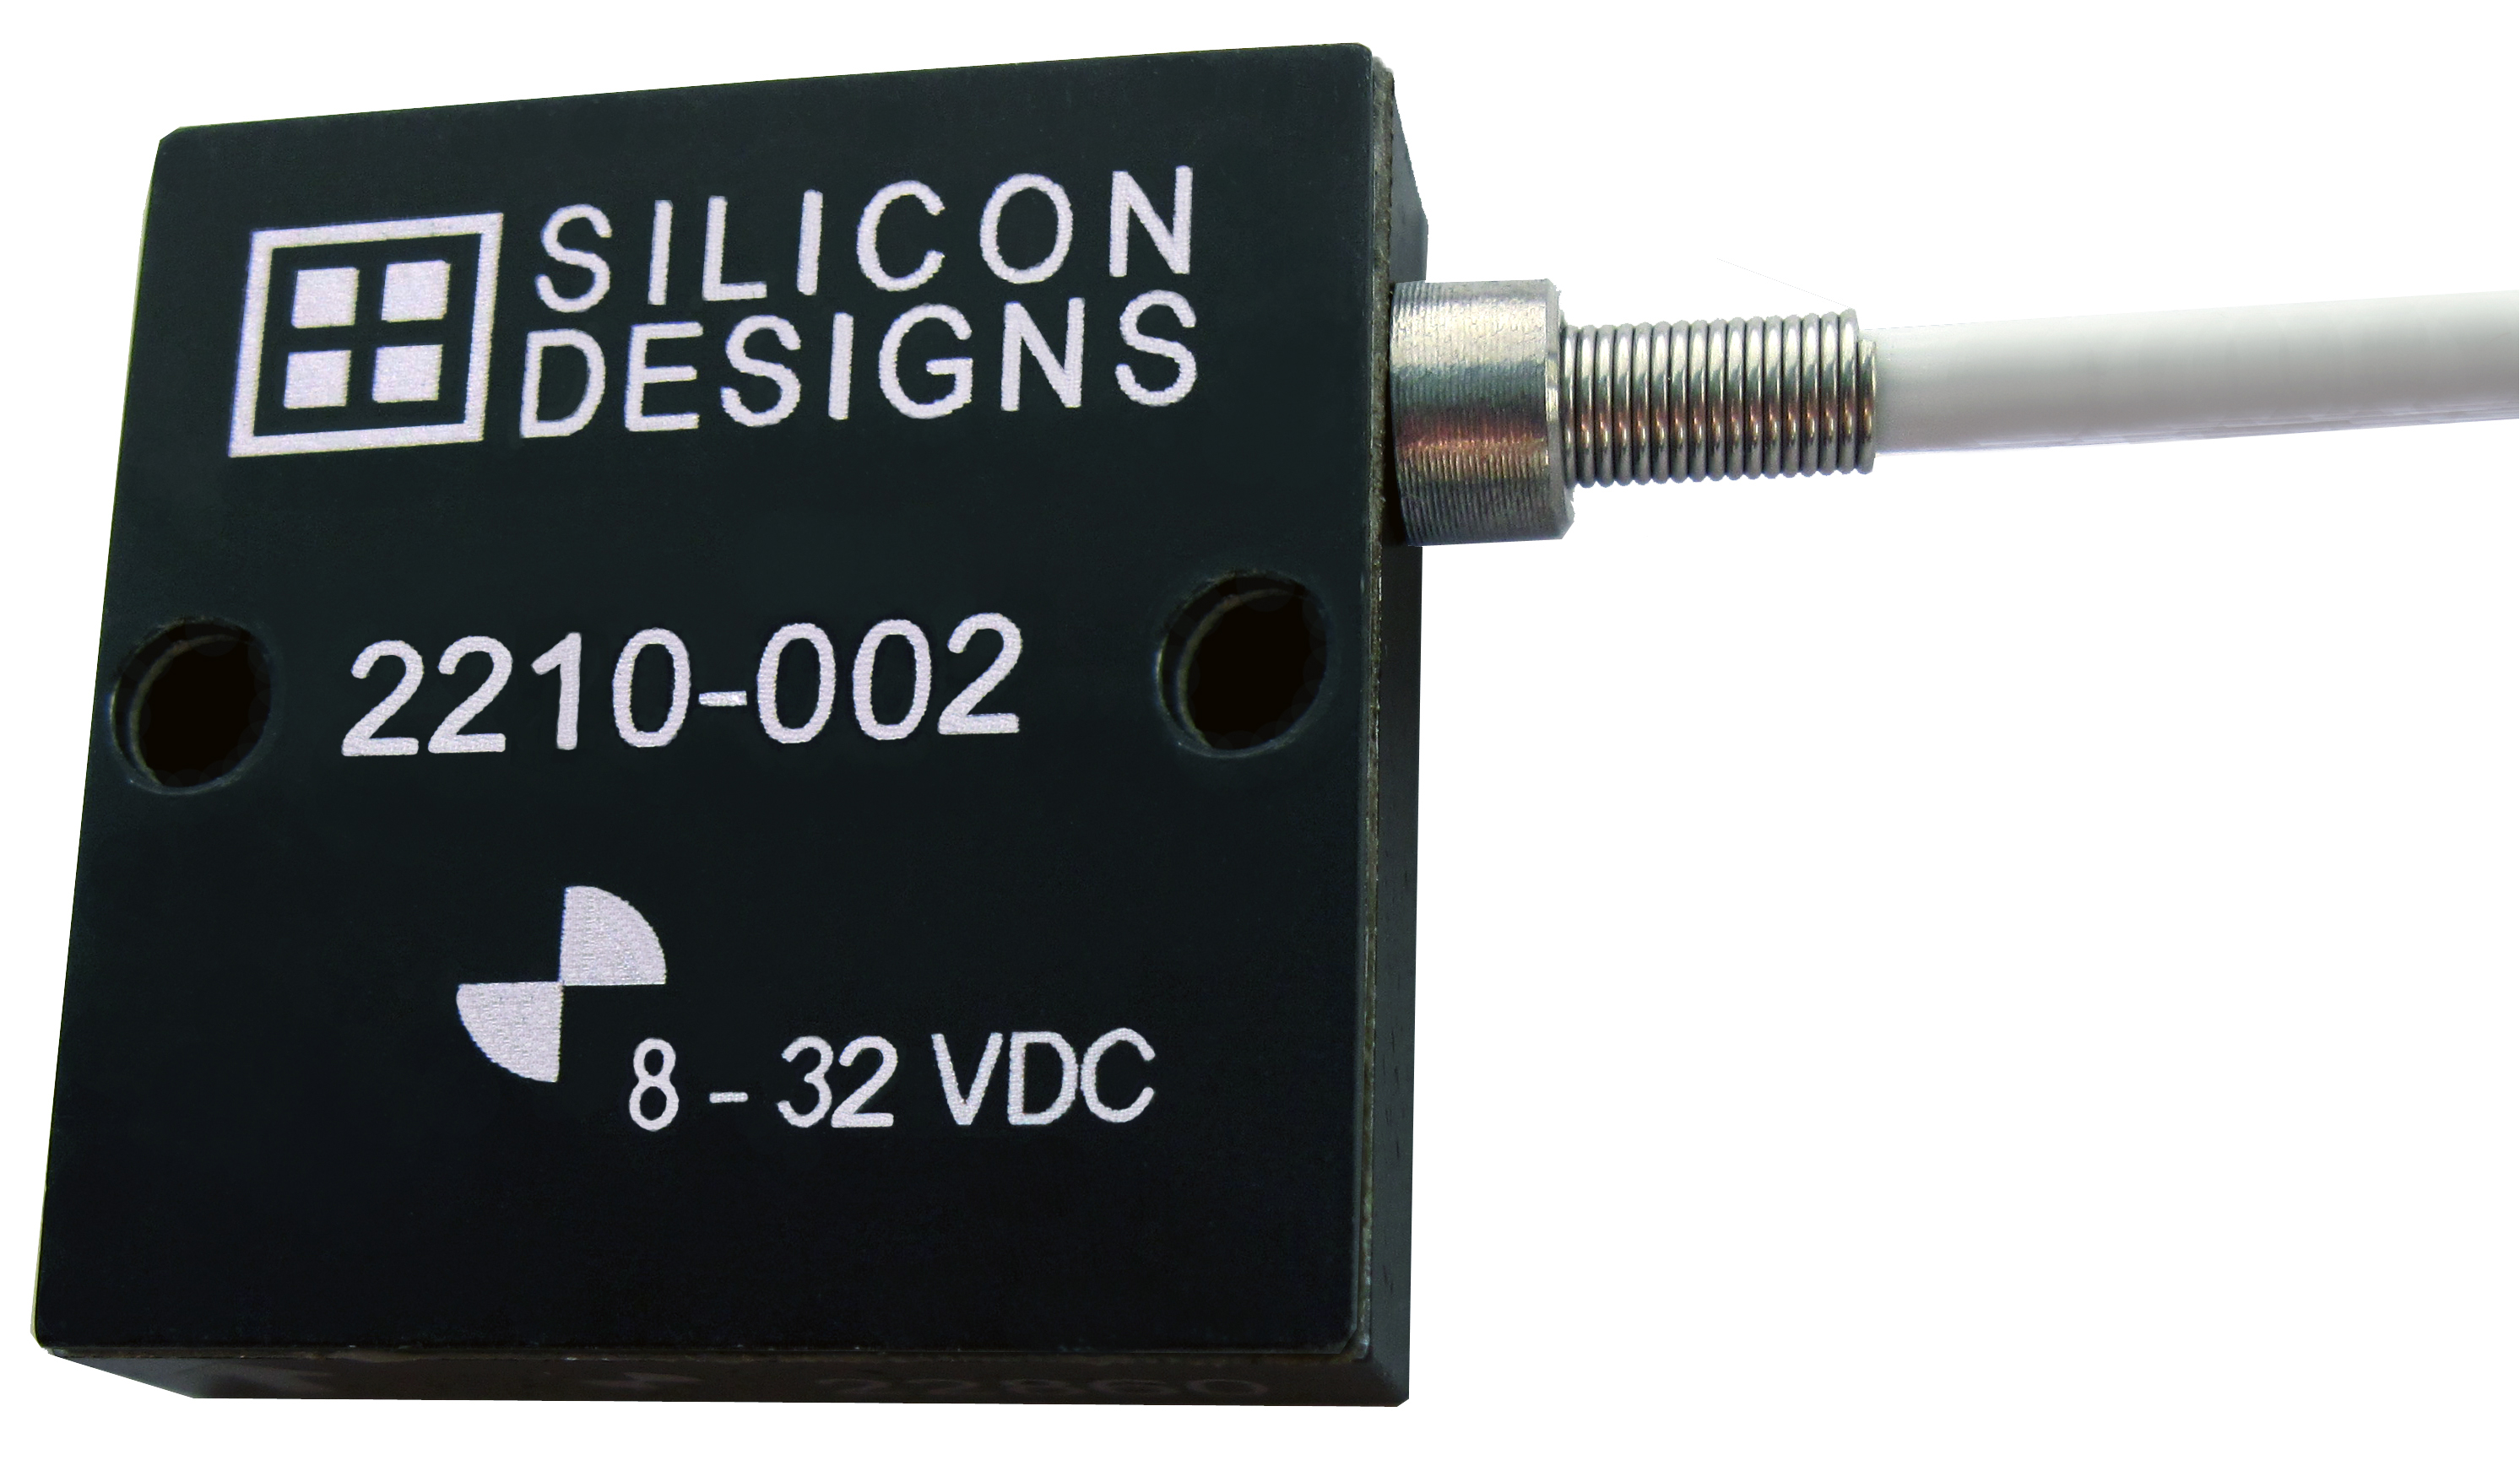 Silicon Designs adds new features to its 2210 accelerometer